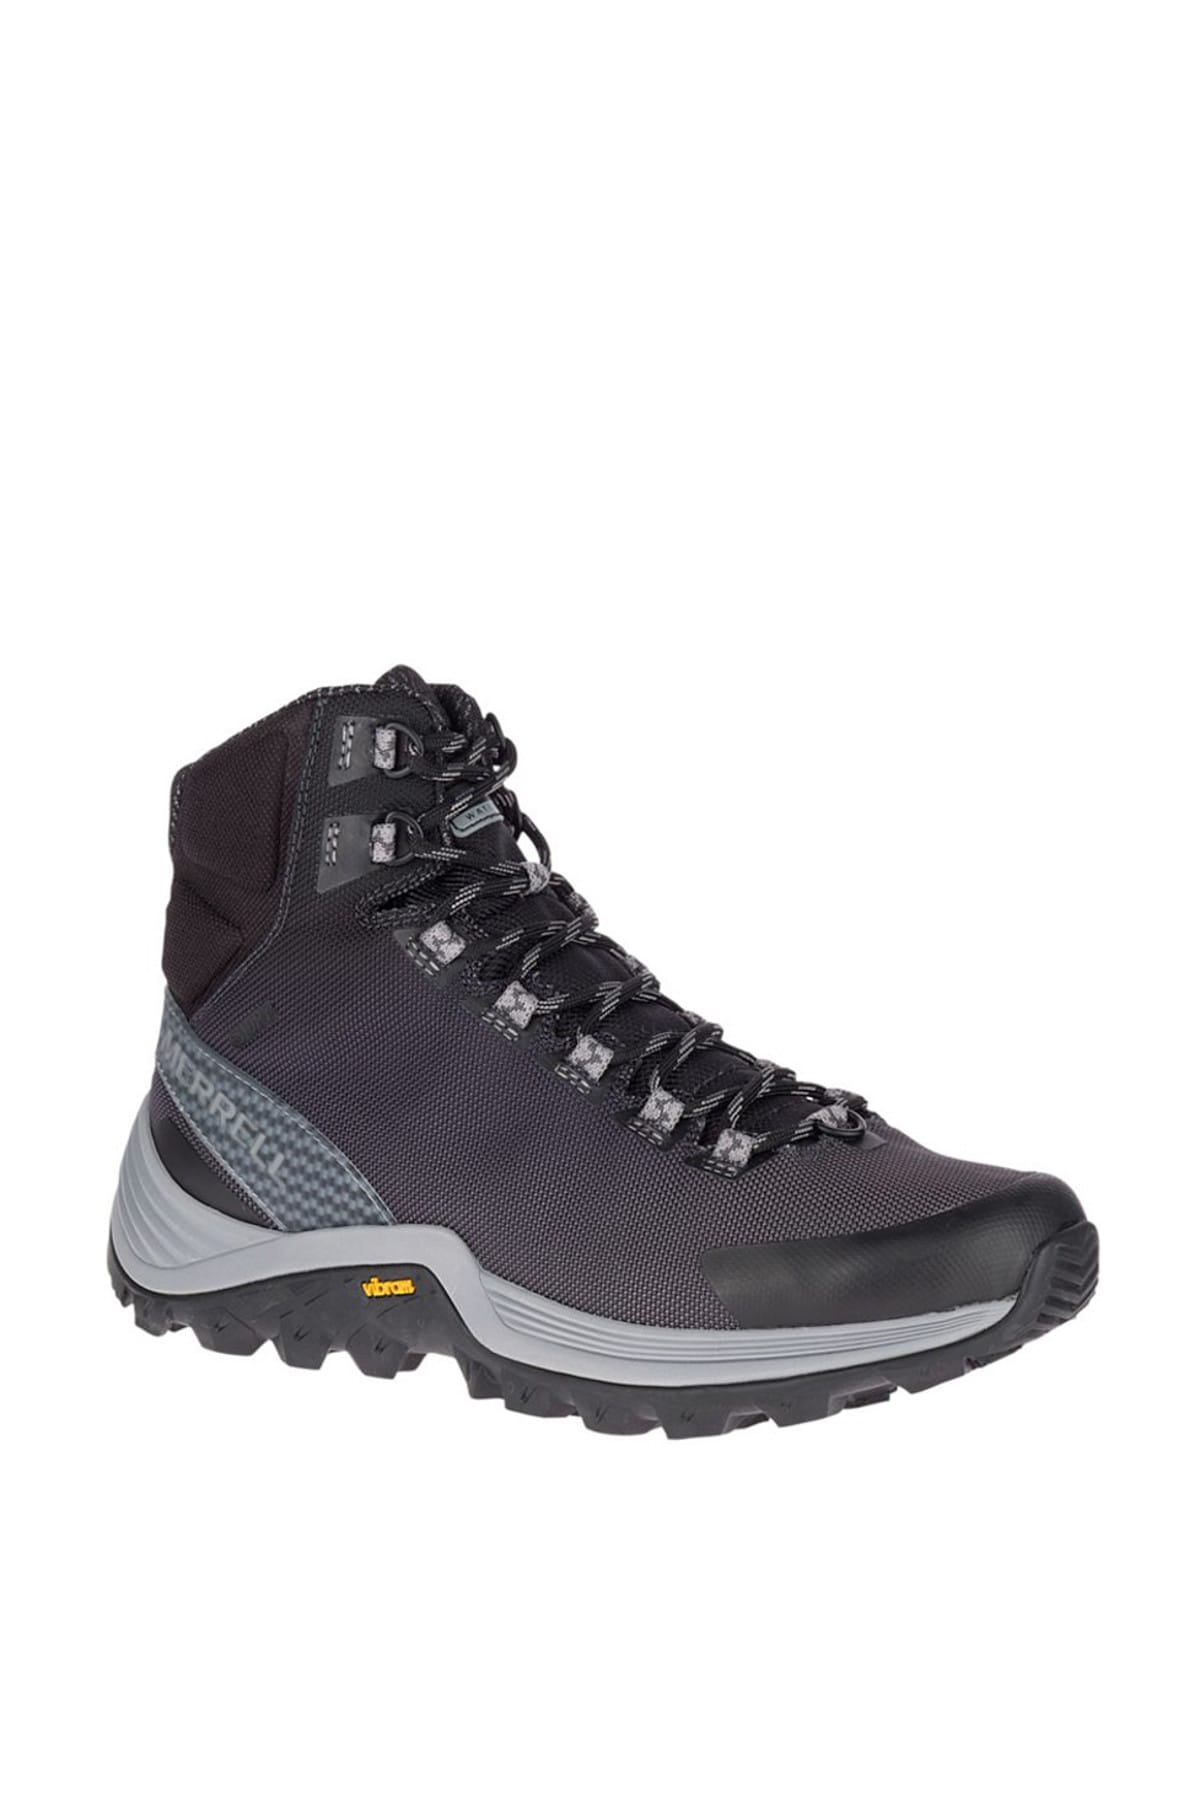 Merrell Thermo Cross